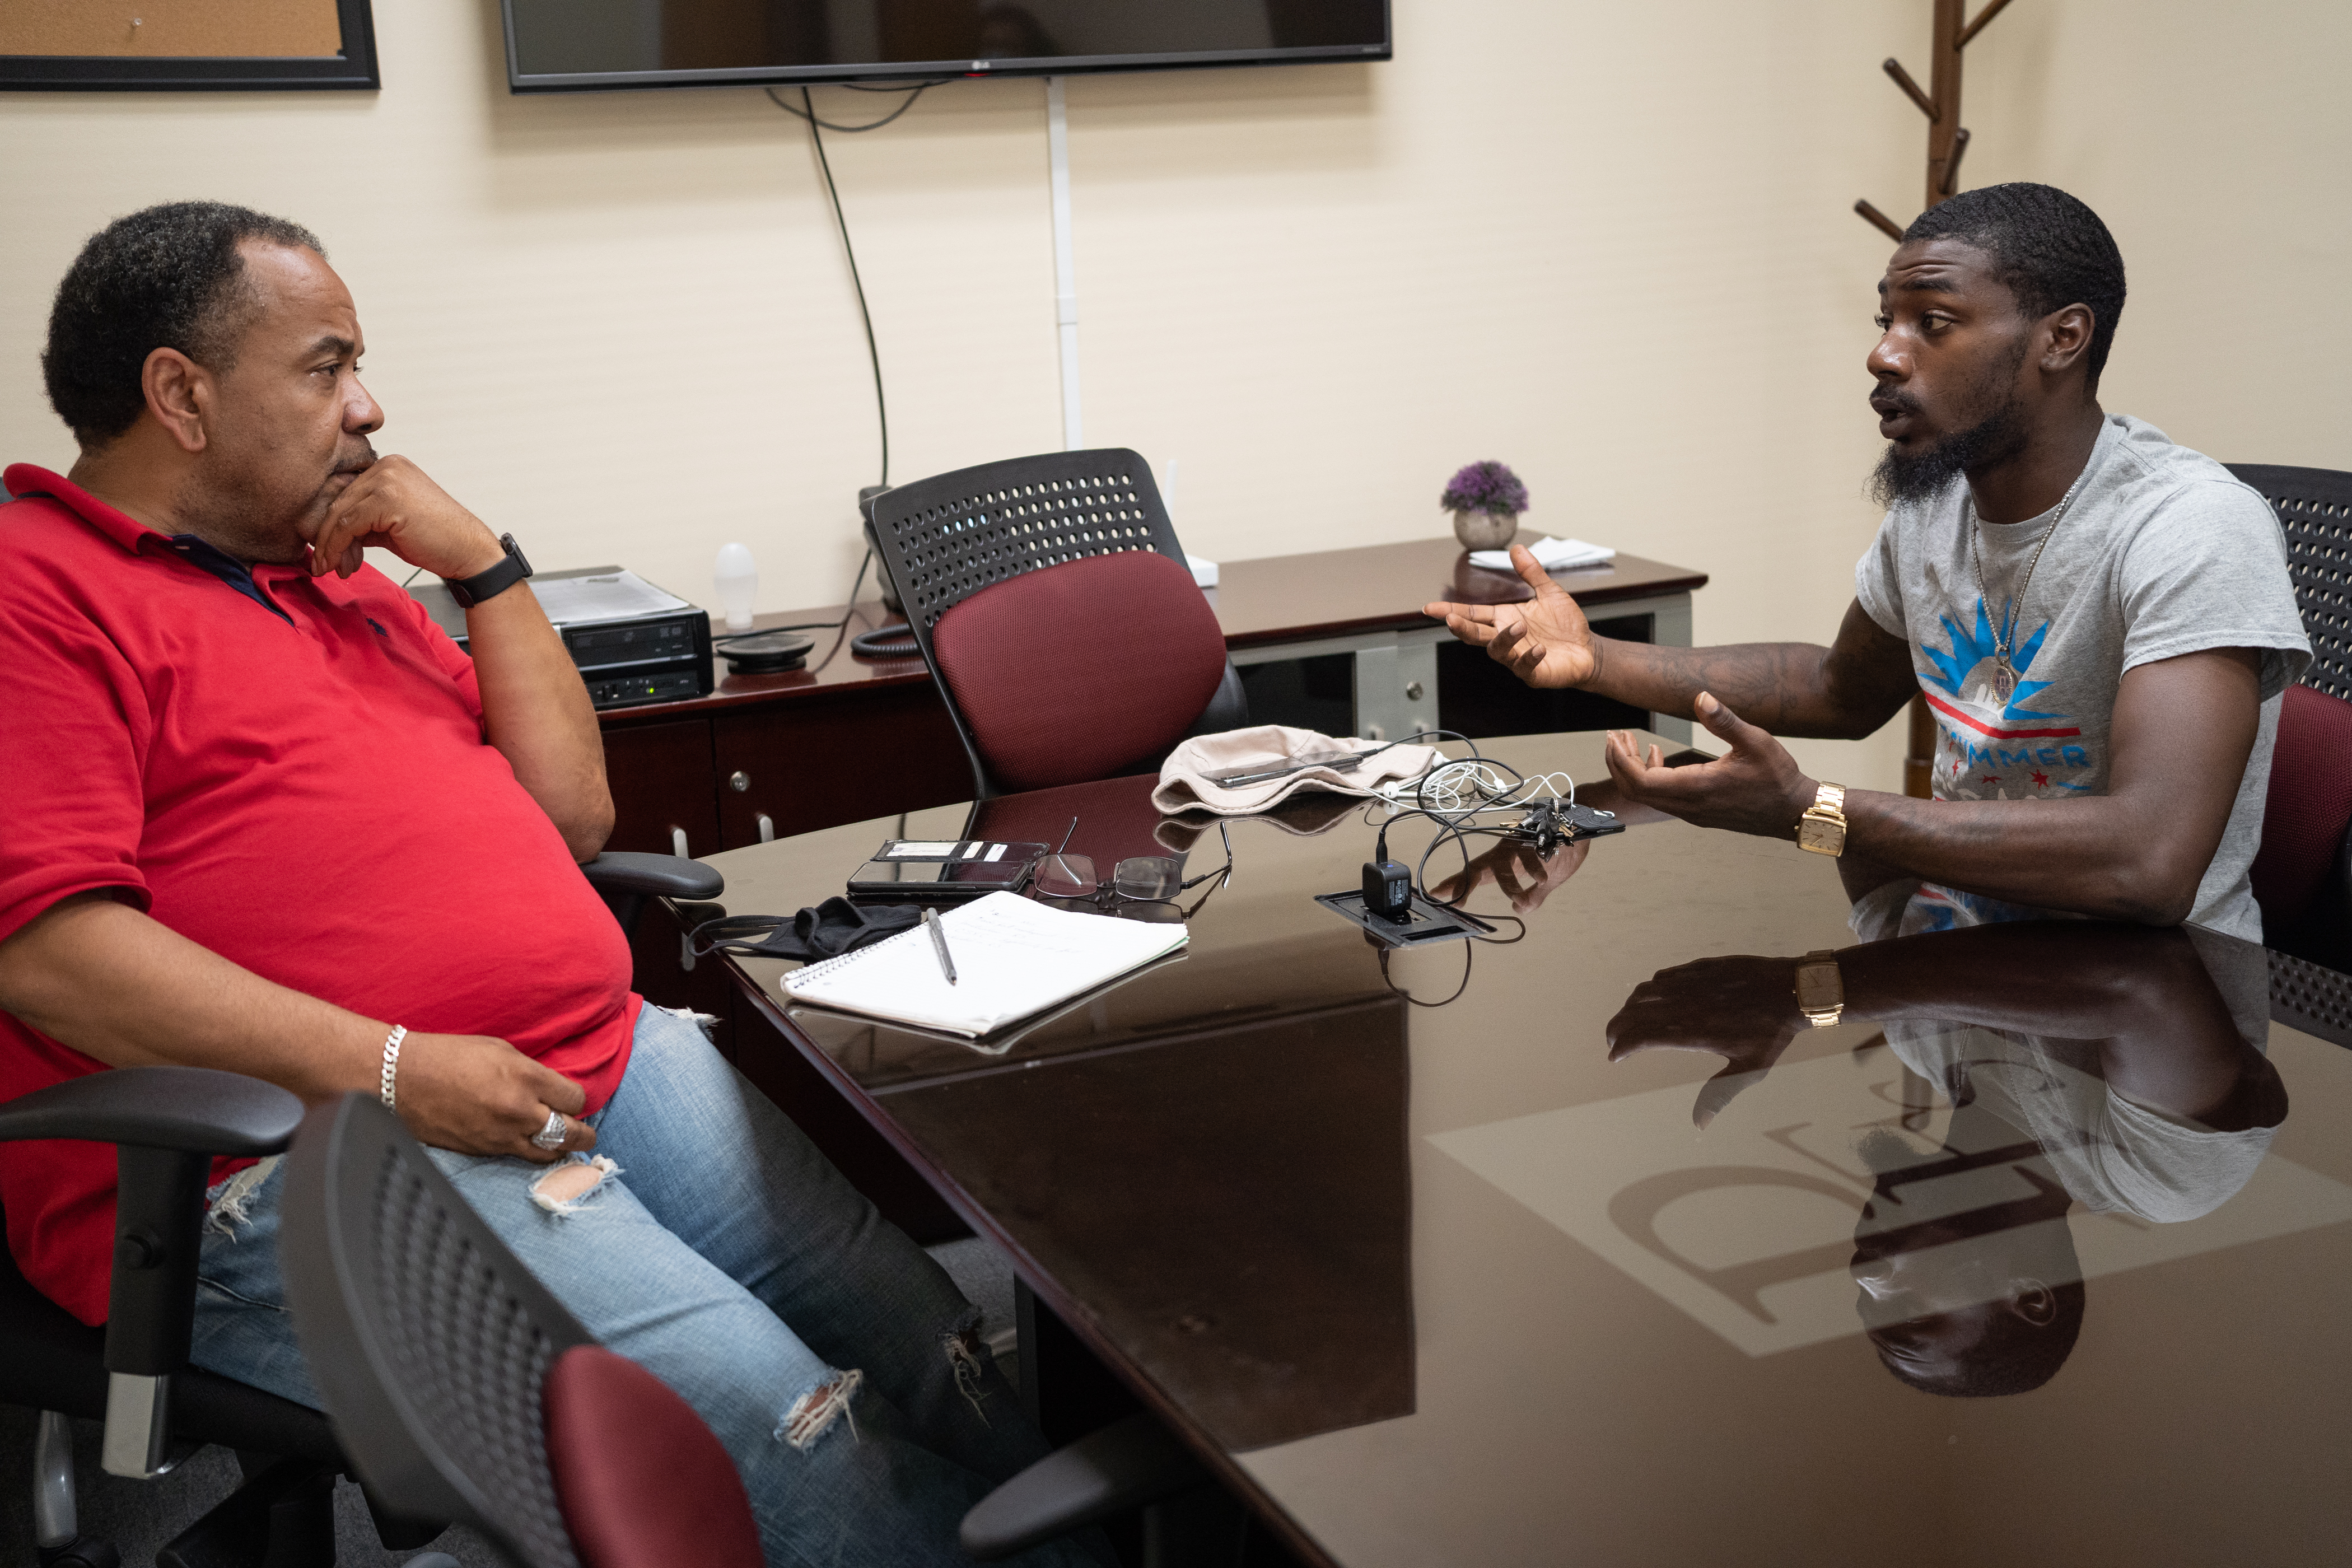 Sidney Johnson in a red shirt and jeans sits at a desk at the Roseland Reconnection Hub in Chicago and mentors Ti'Shawn Clark, who sits on the other side of the desk.